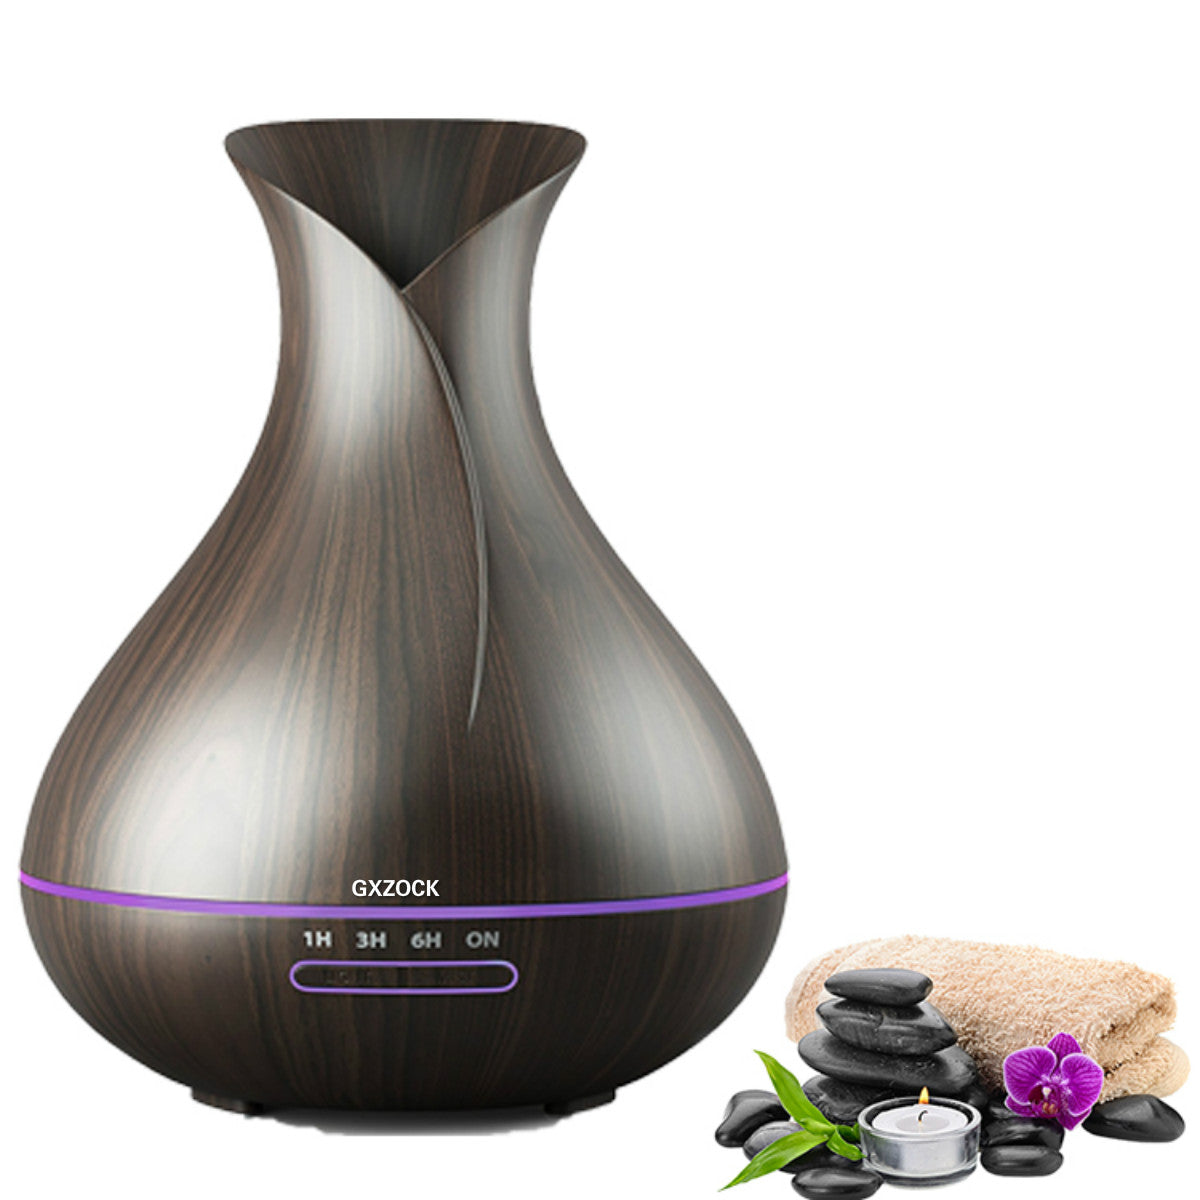 400ml Essential Oil Diffusers Ultrasonic Humidifier Portable Aromatherapy Diffuser with Cool Mist and 7 Colour Changing LED Lights